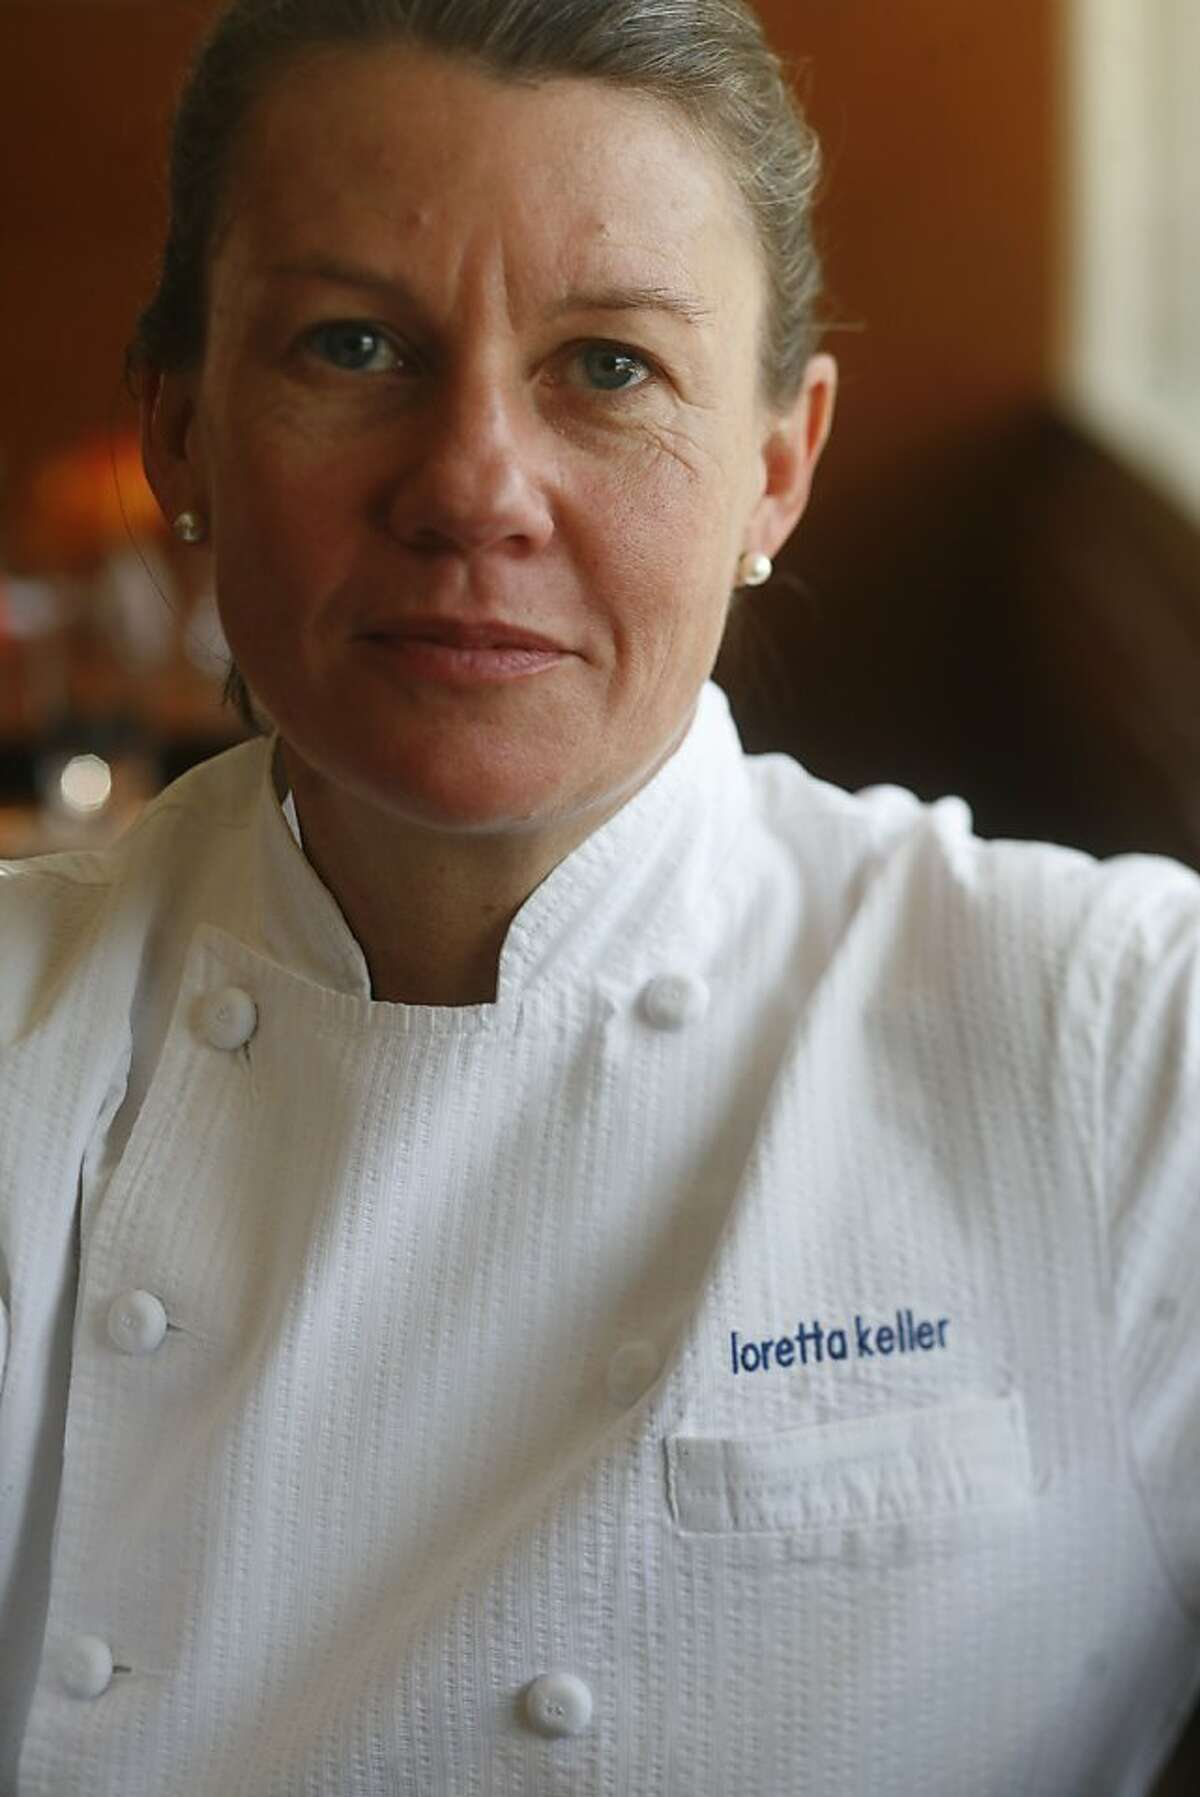 womenchefs_keller000091.JPG Loretta Keller is the executive chef behind the success of CoCo 500 in San Francisco. 5/24/07. Mike Kepka / The Chronicle Loretta Keller (cq)